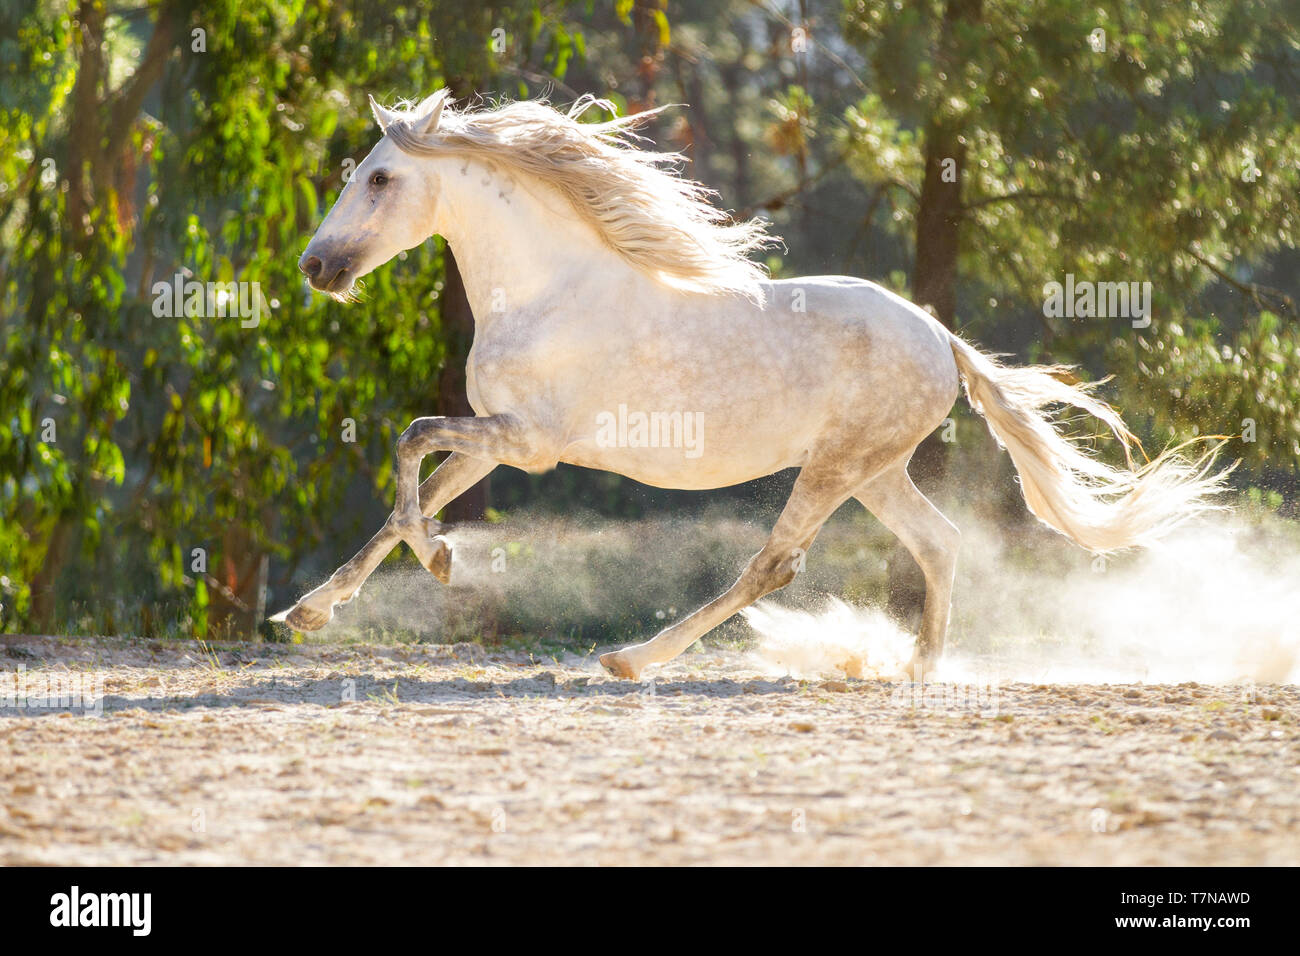 Lusitano. Dapple grey adult horse galopping in a paddock. Portugal - Stock Image